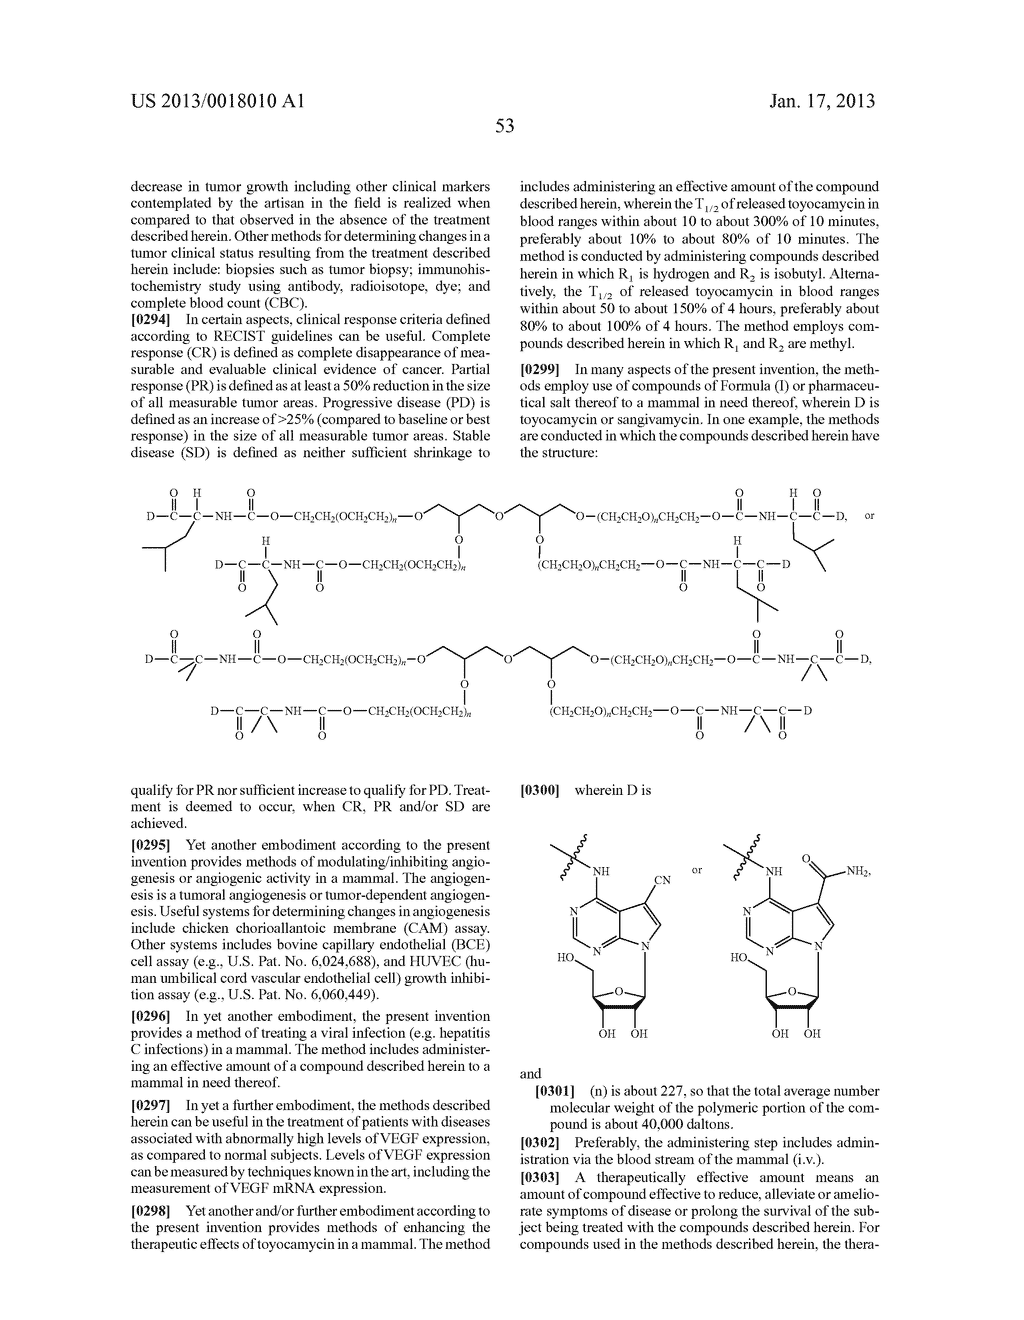 POLYMERIC CONJUGATES OF ADENINE NUCLEOSIDE ANALOGS - diagram, schematic, and image 72